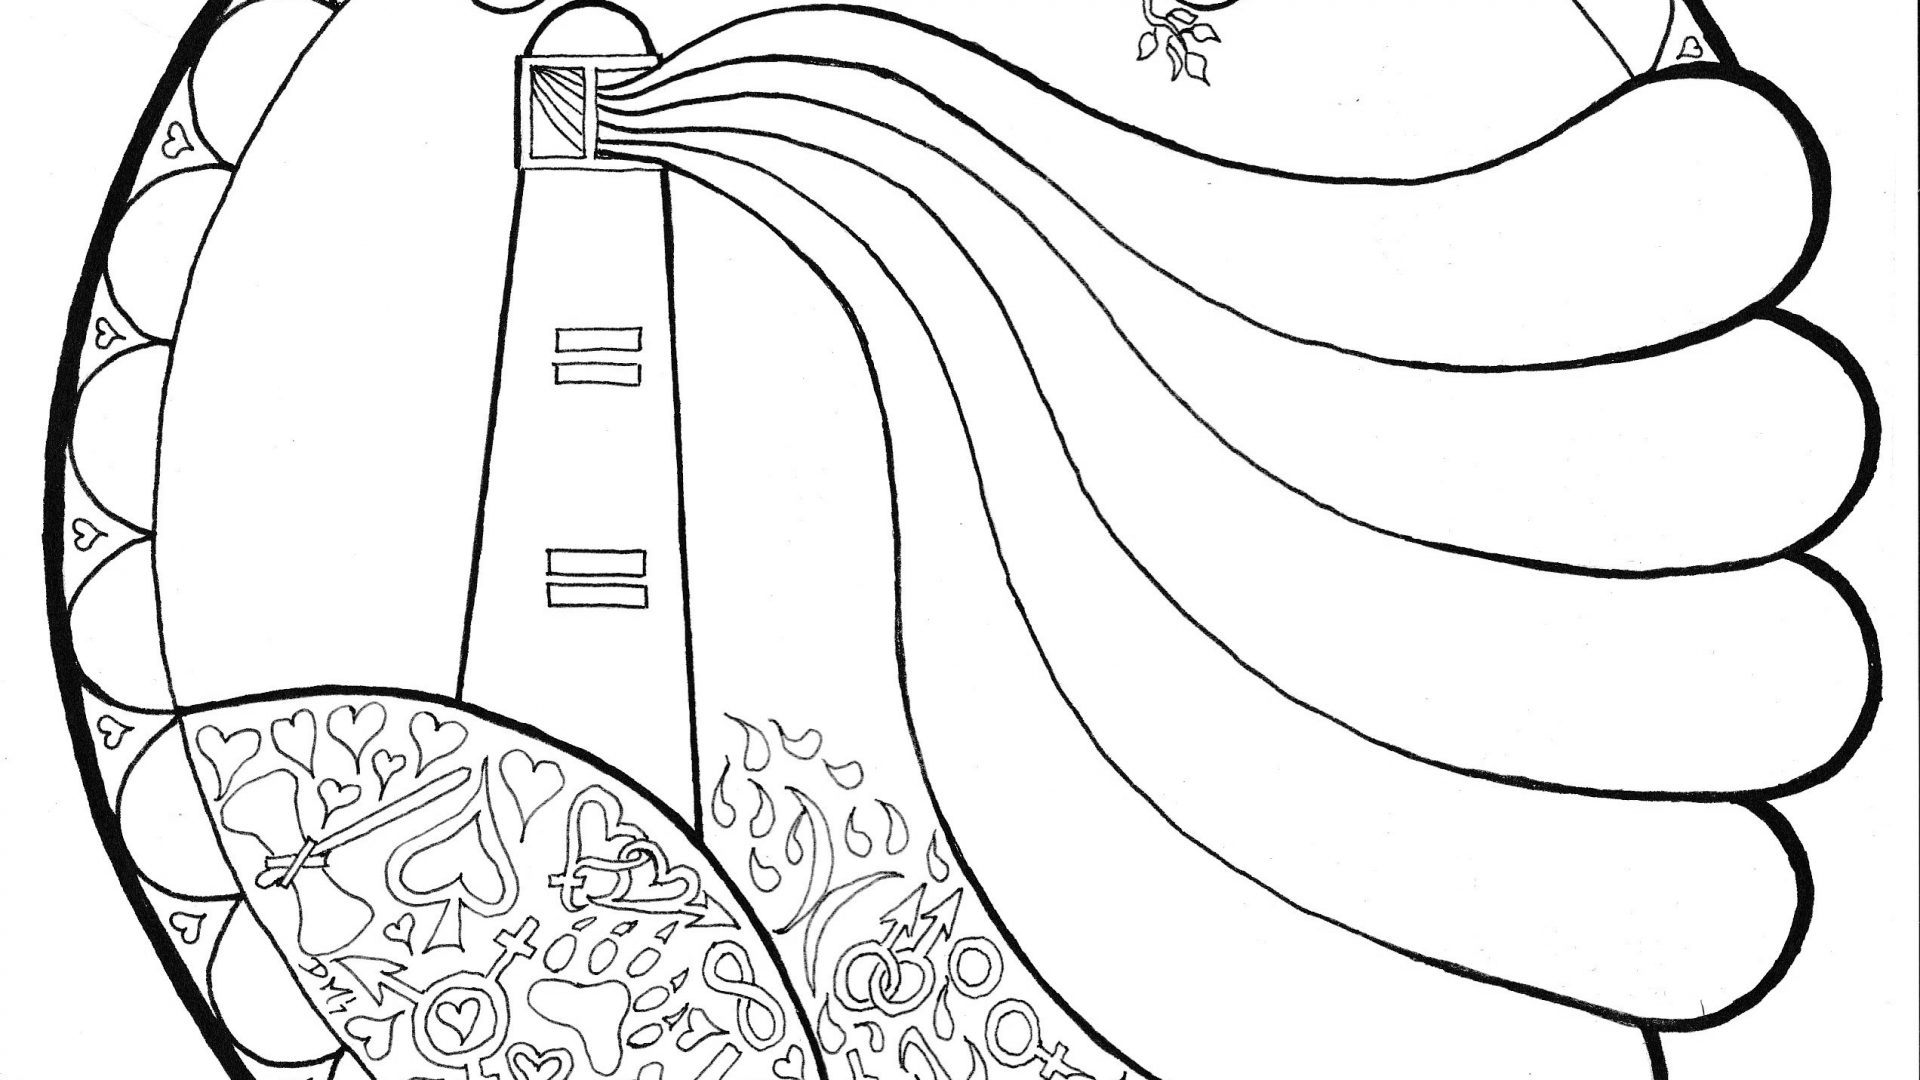 1920x1080 Stunning Lighthouse Coloring Pages With Beautiful Scenery Free